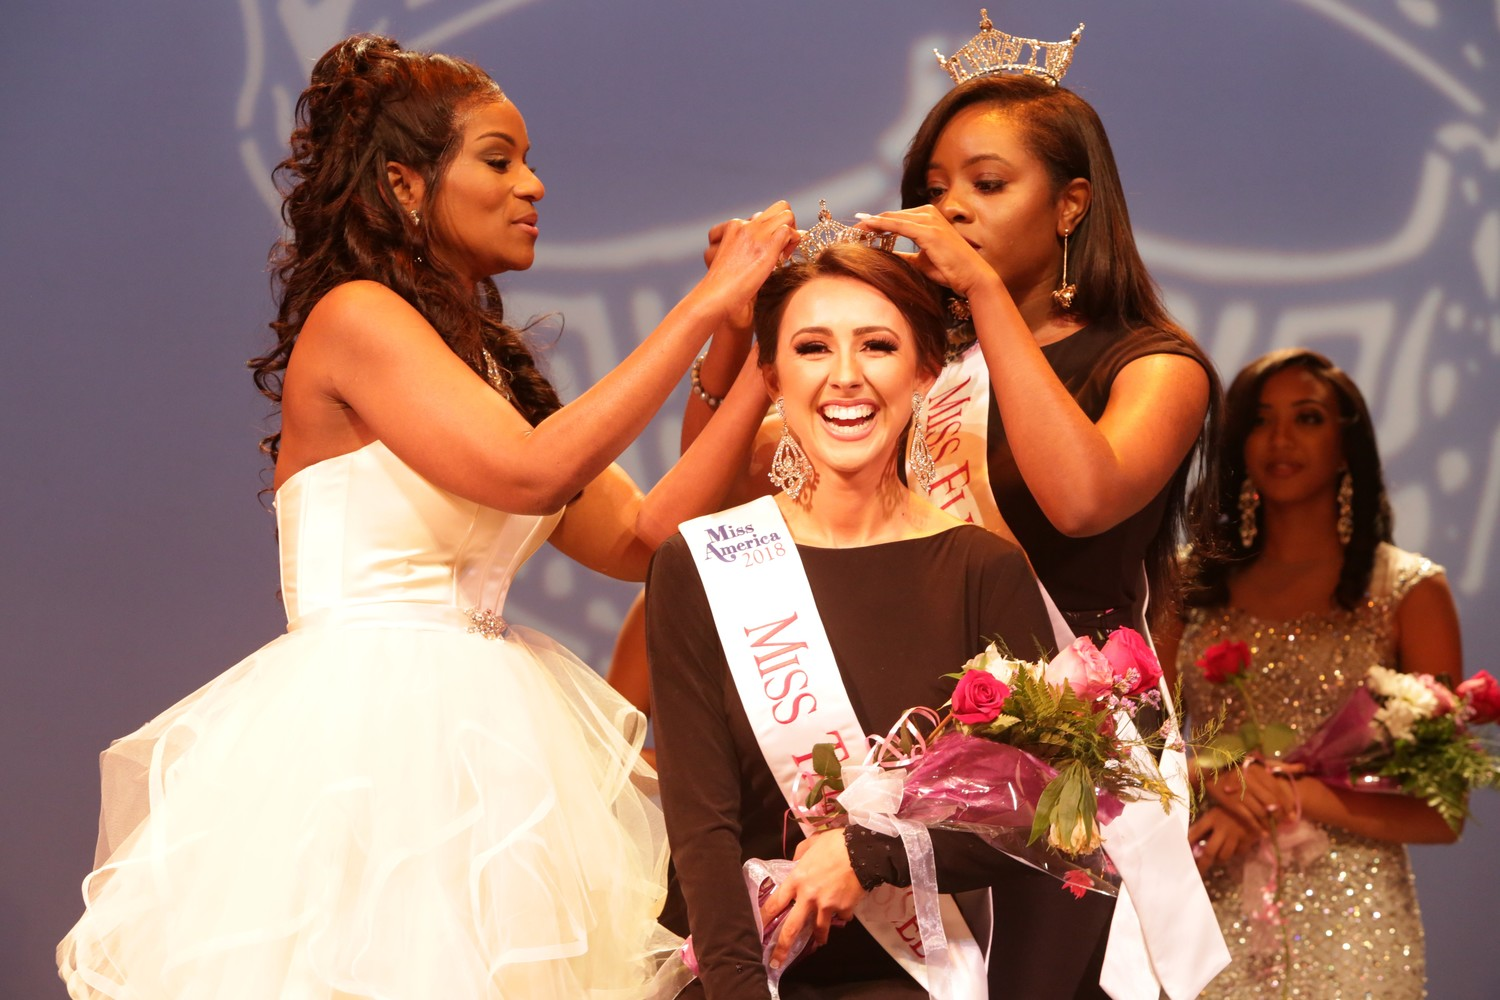 Ponte Vedra Beach native Leila Sabet is crowned Miss Tallahassee 2018 by the Miss America Organization.